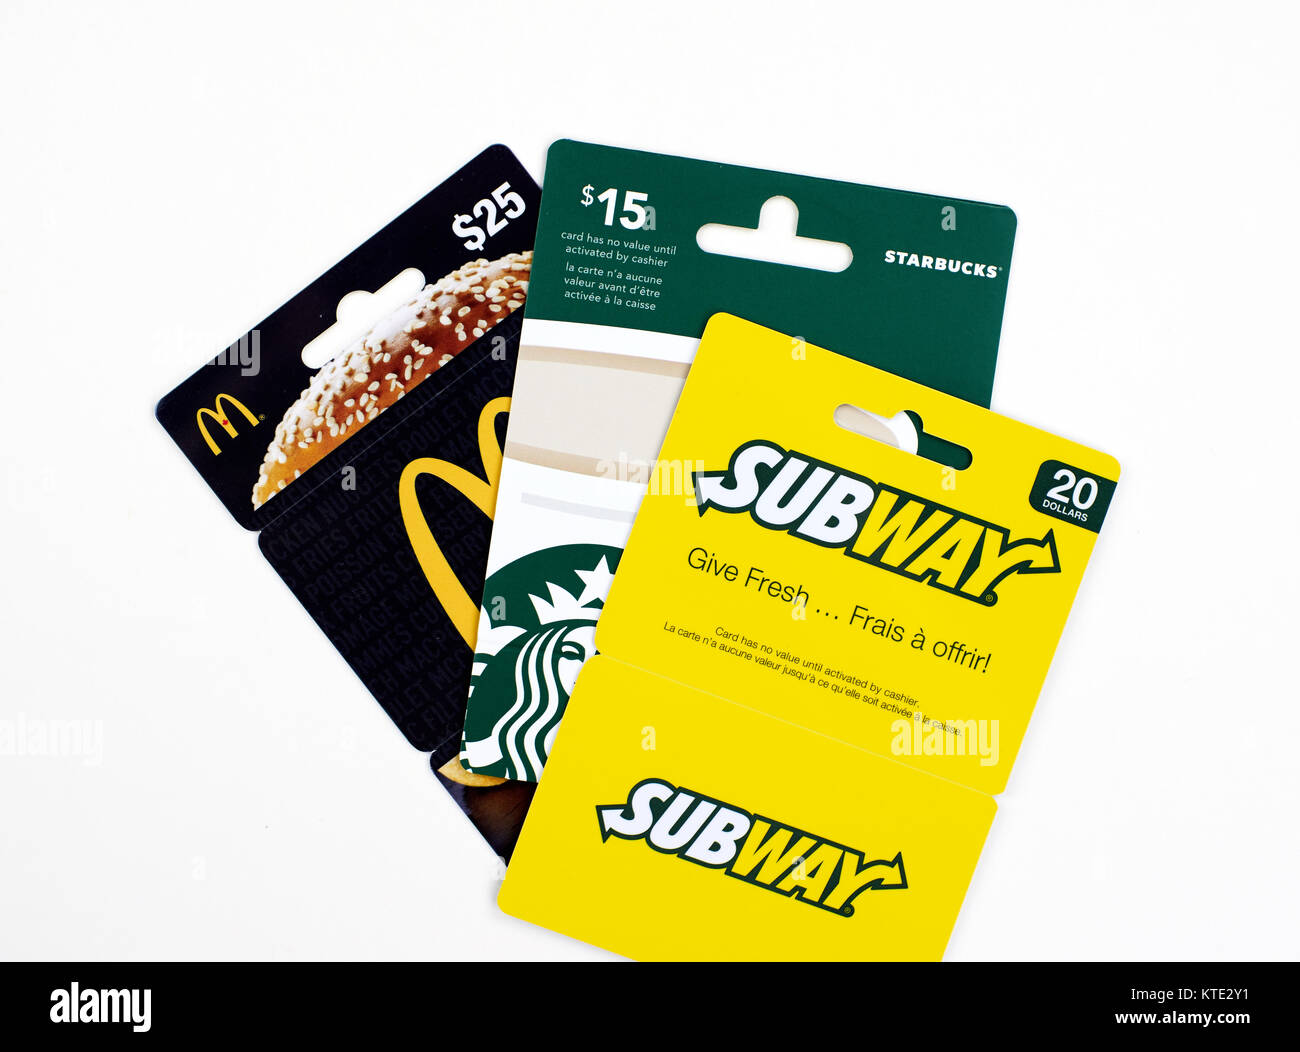 Subway Canada: For every $25 you load on gift card, you get any 6